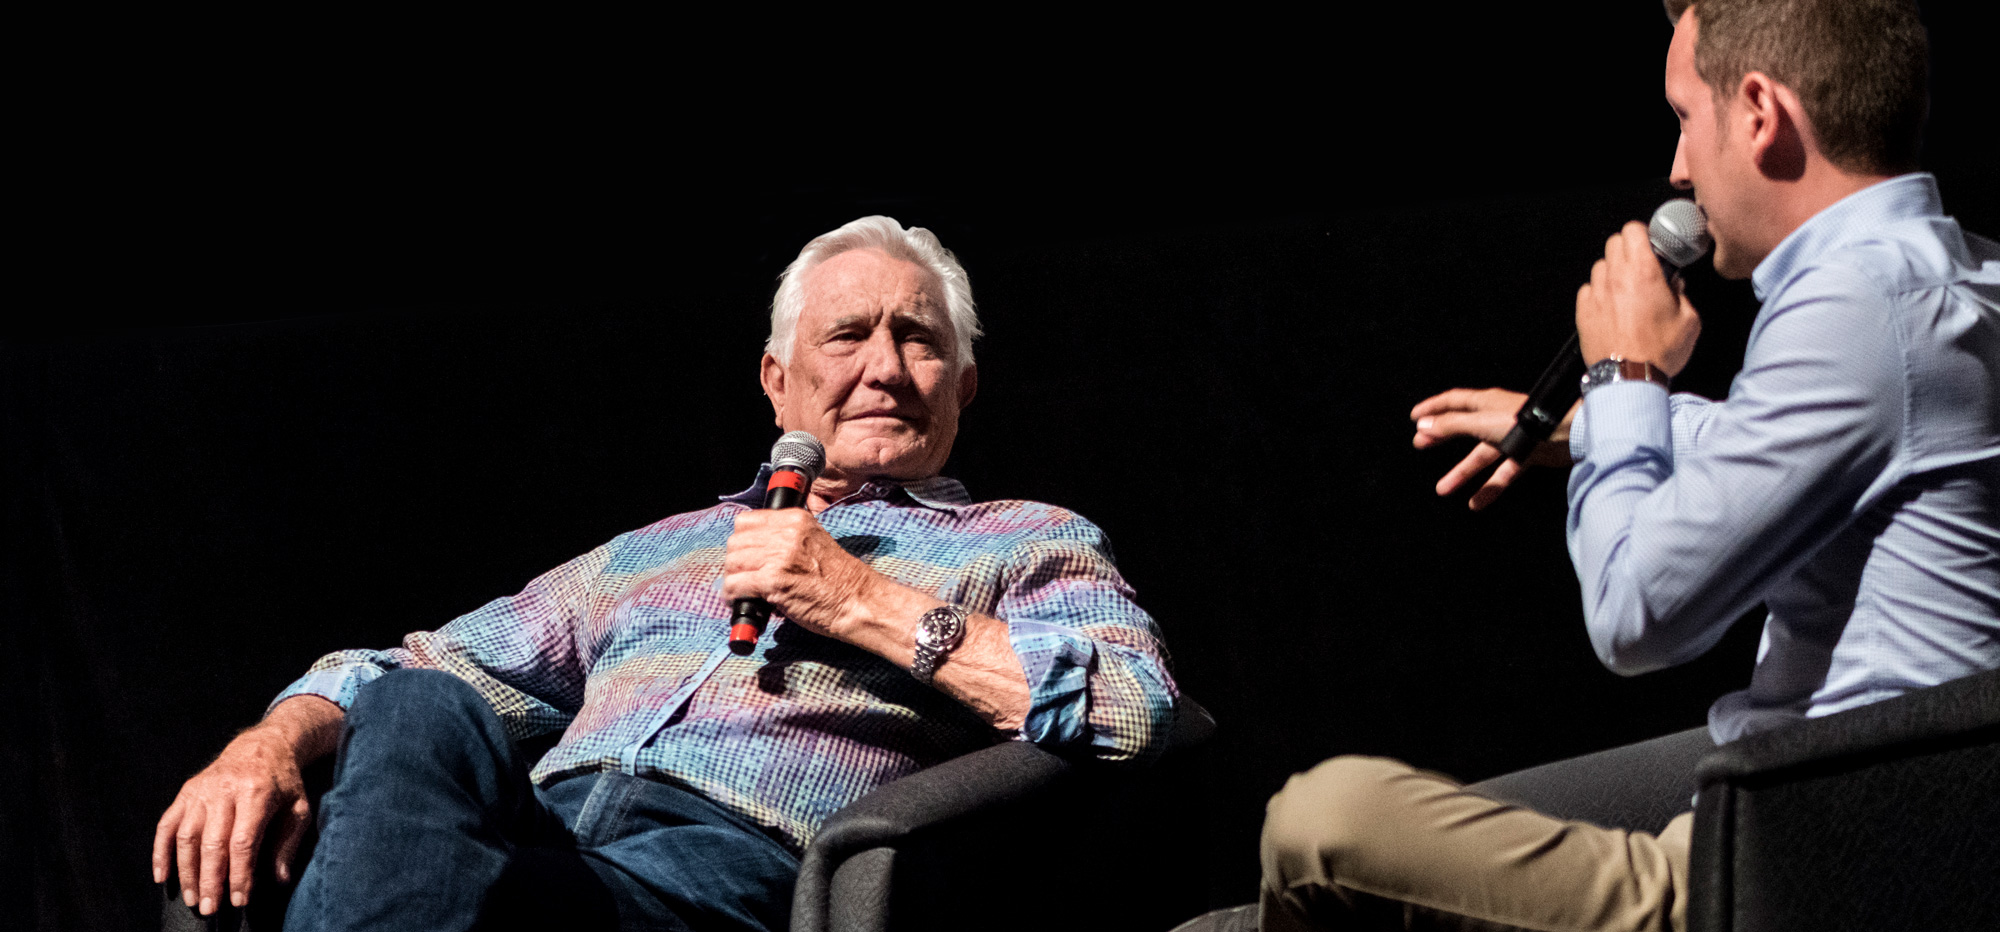 George Lazenby Events and Screenings